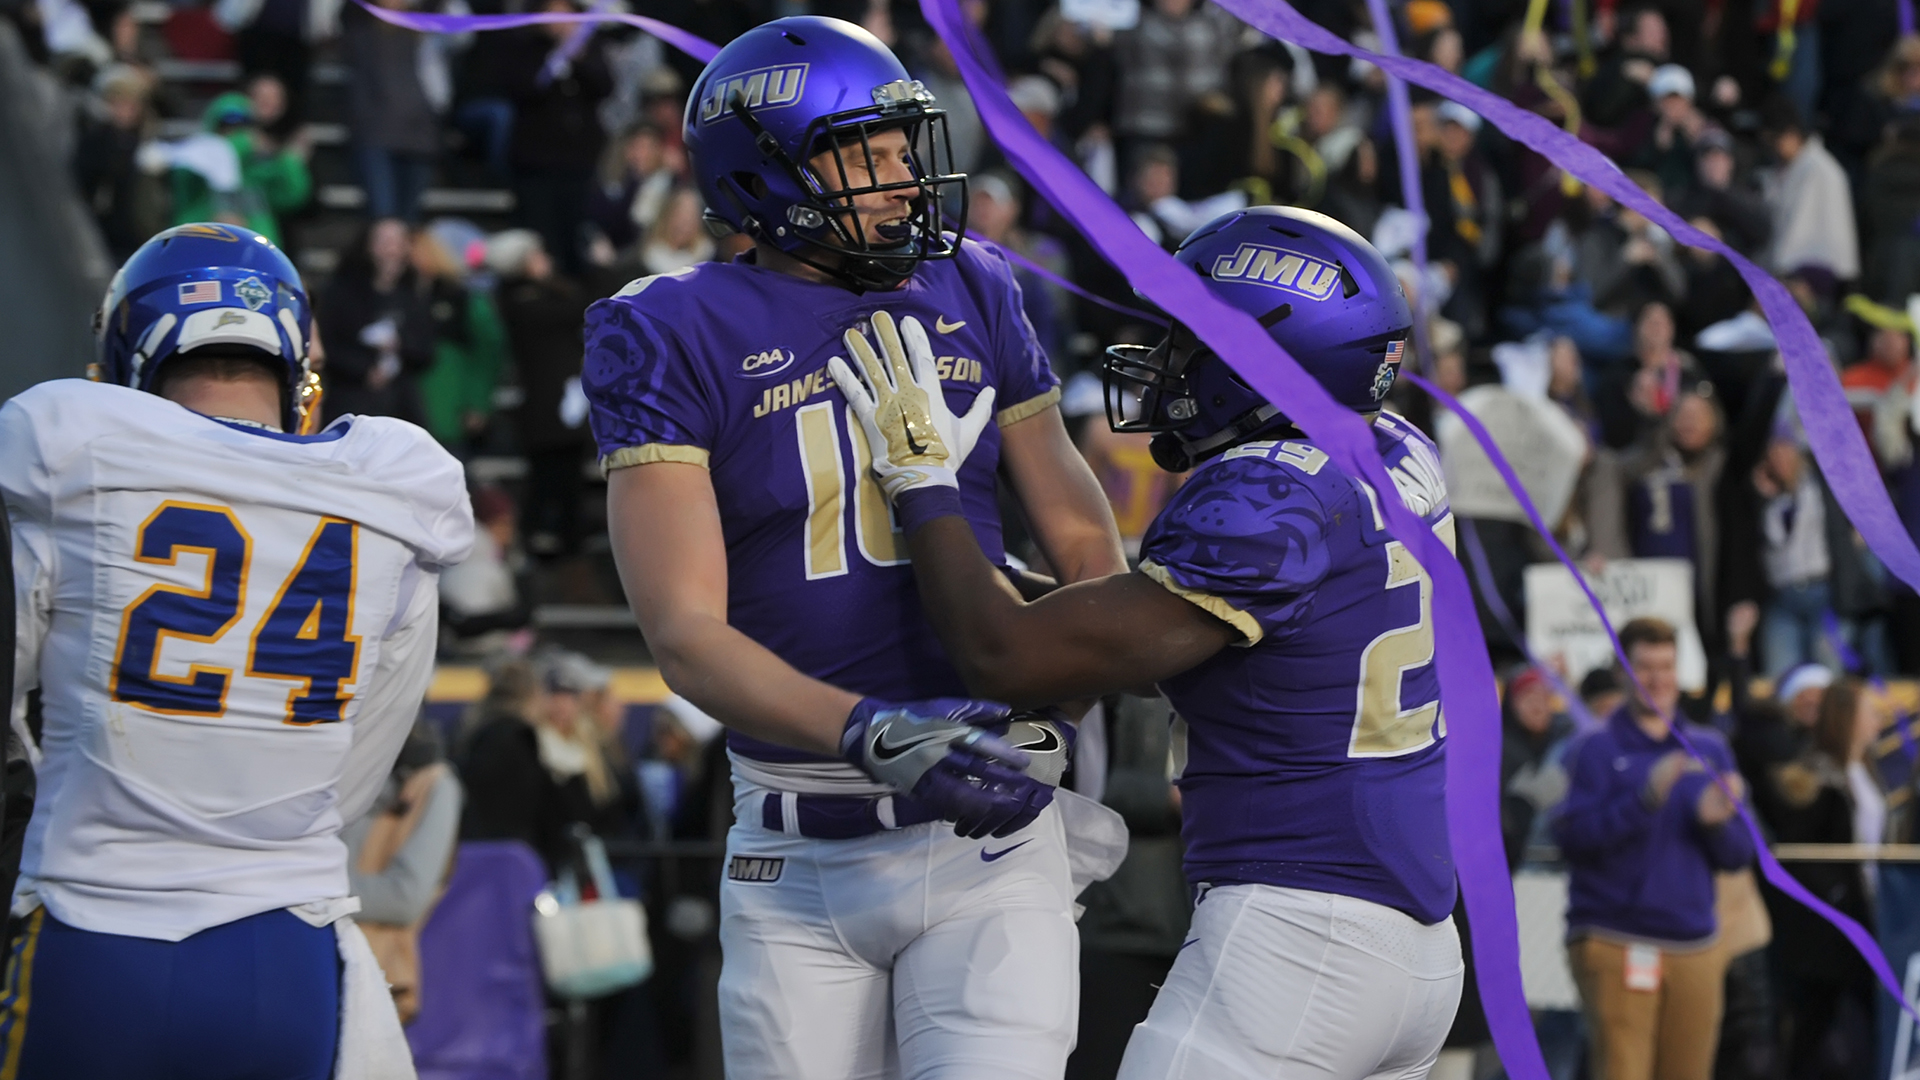 Football: Frisco Bound! JMU Punches Ticket to FCS Title Game Downing South Dakota State 51-16)